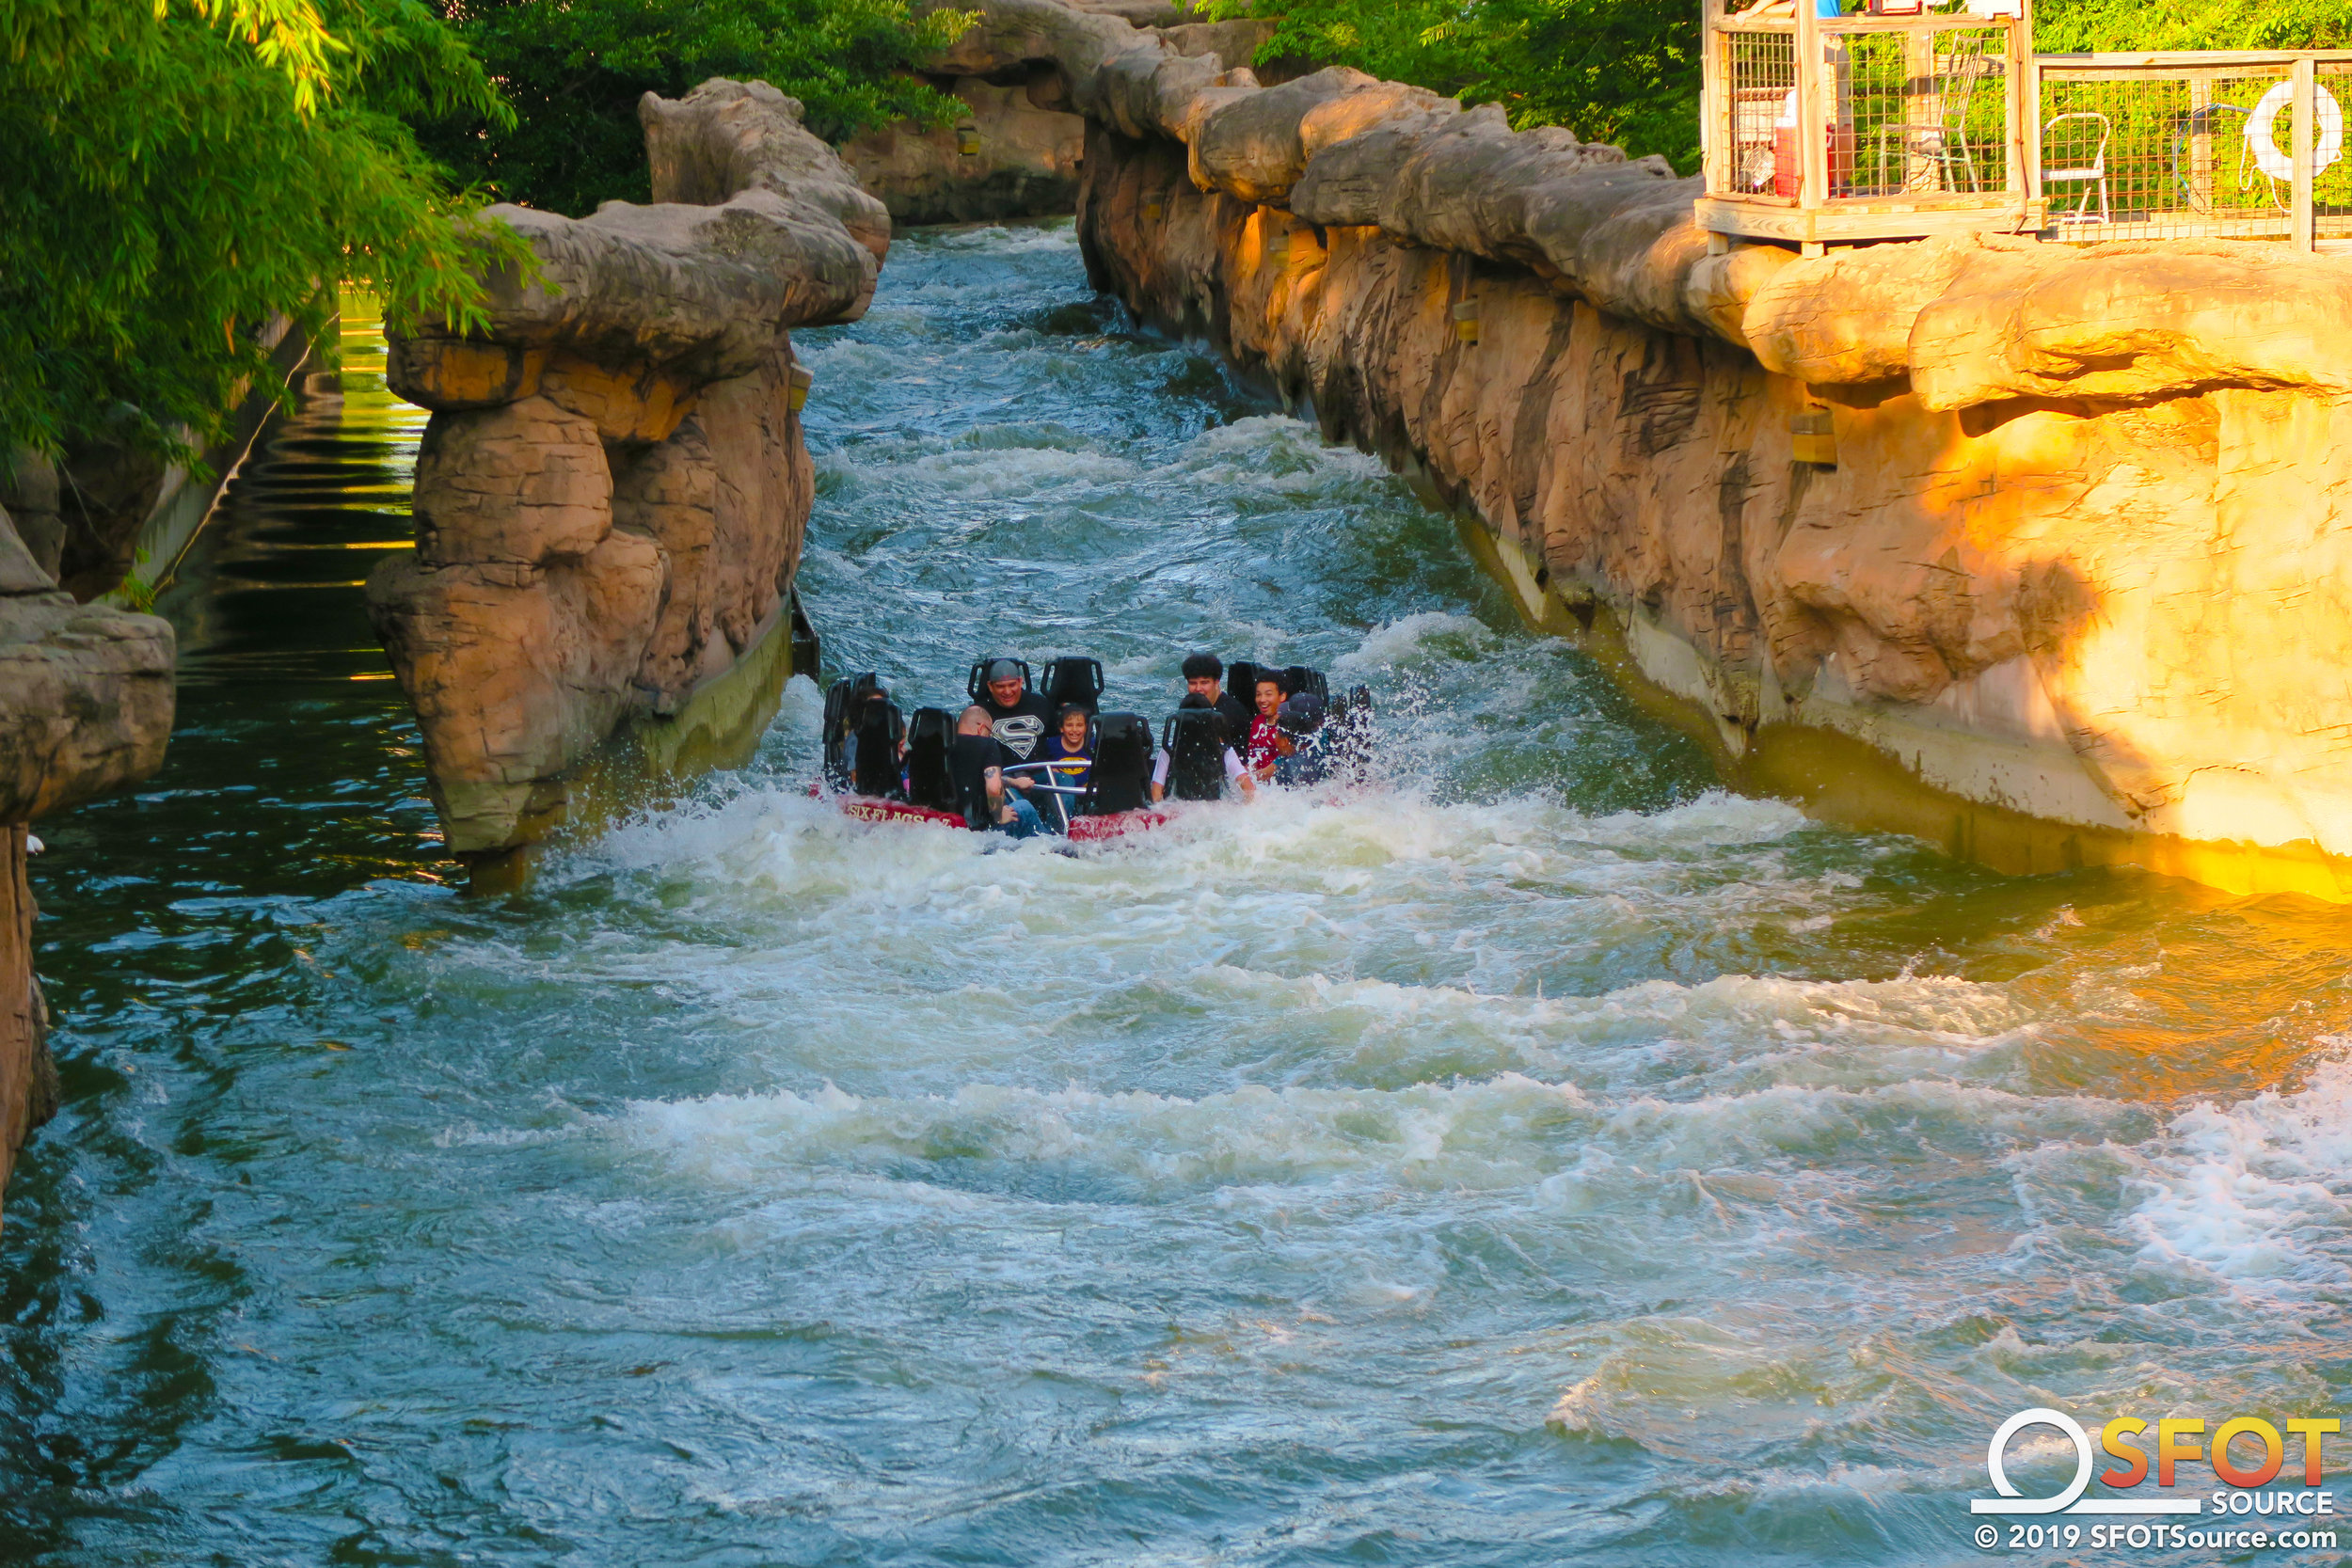 Passengers travel through the final huge rapid of the ride cycle.